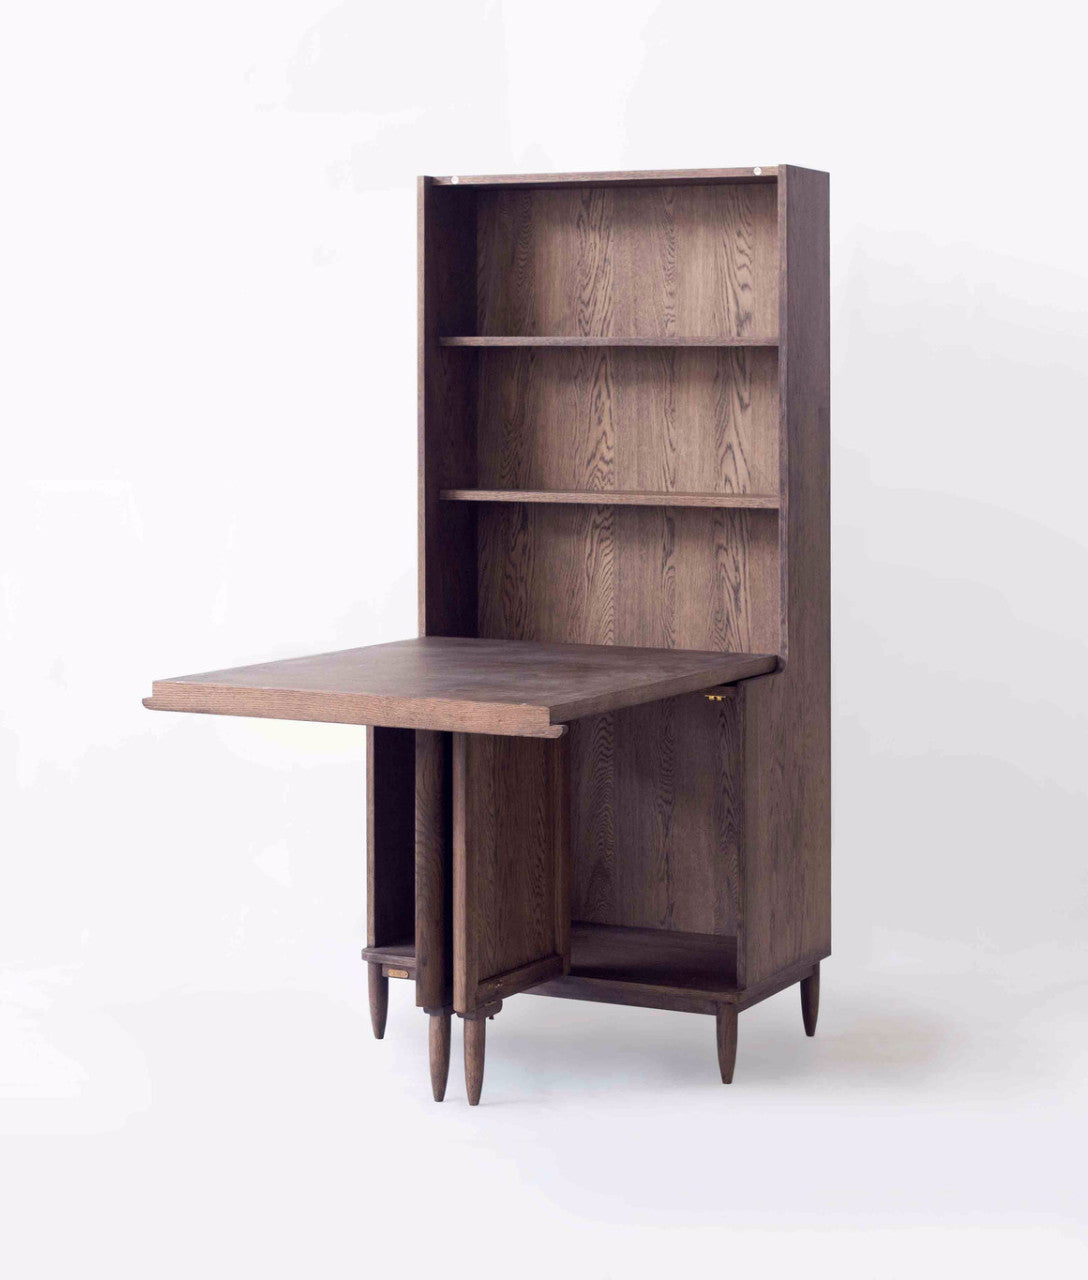 Ziinlife APO CUPBOARD TABLE WALNUT BROWN OPEN